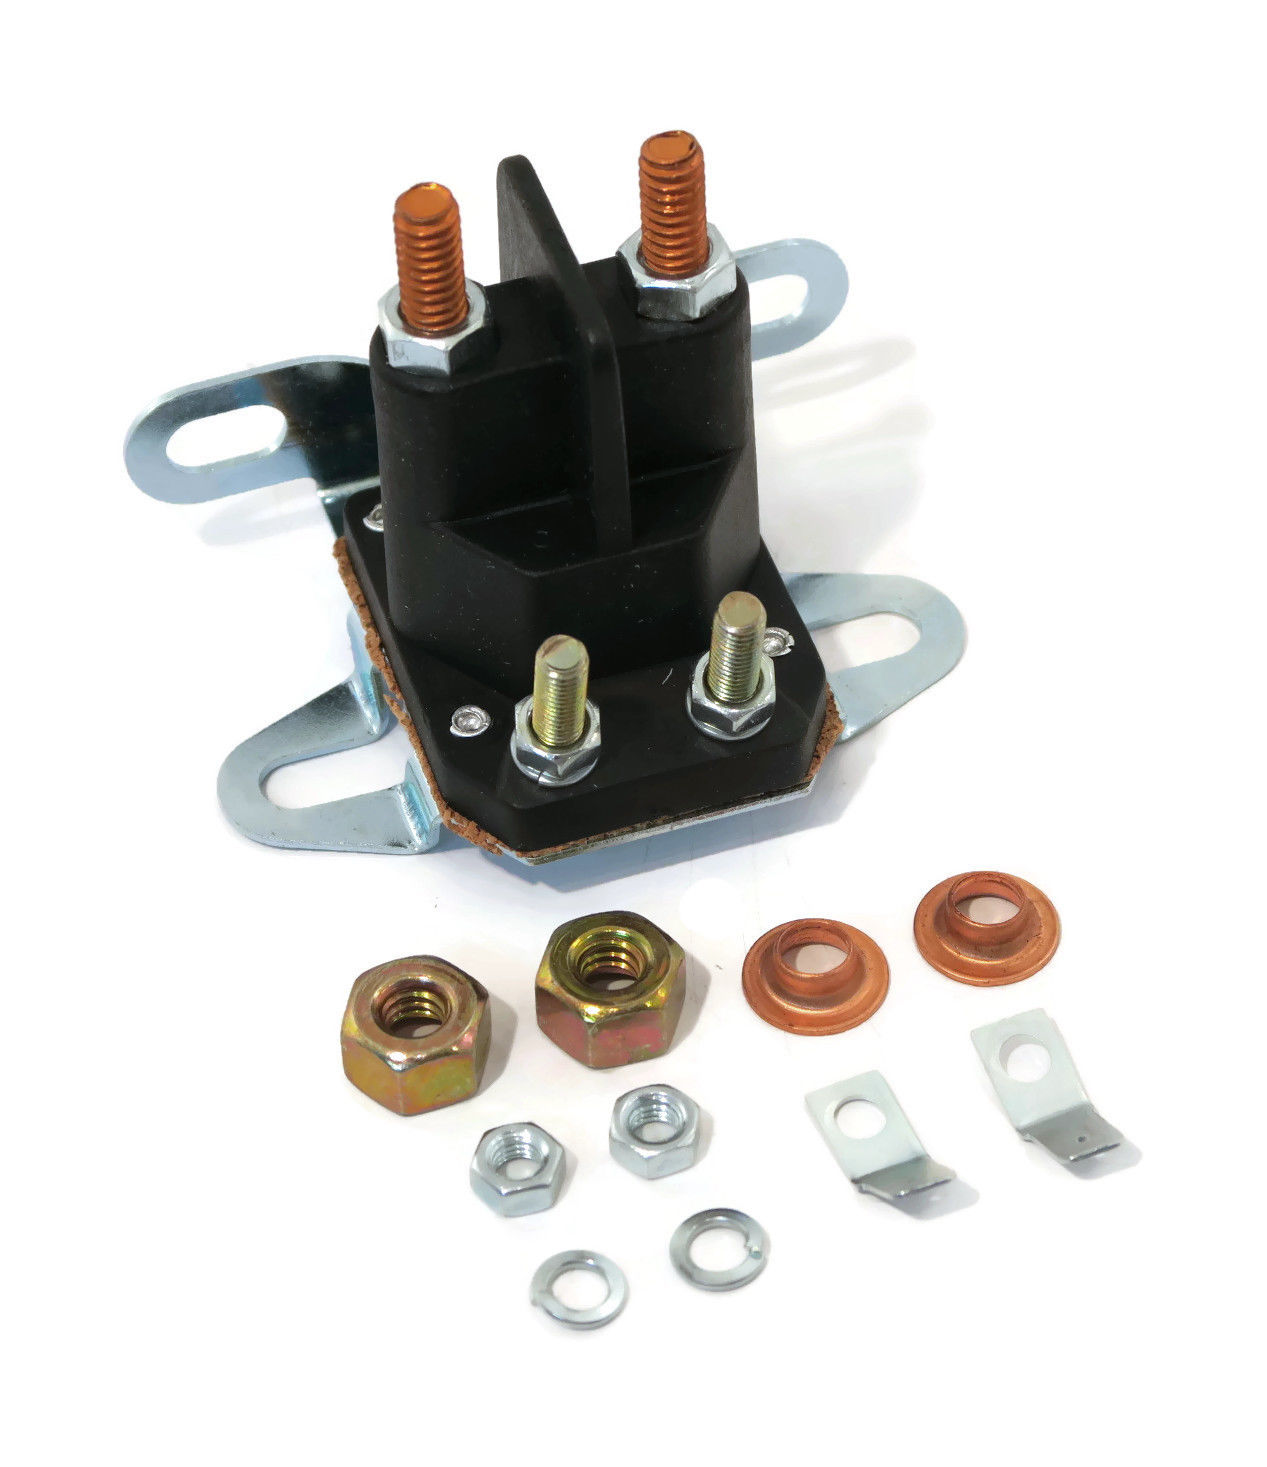 STARTER RELAY SOLENOID fits MTD 833E 833R 933E 933R White Outdoor Lawn Tractors by The ROP Shop by The ROP Shop